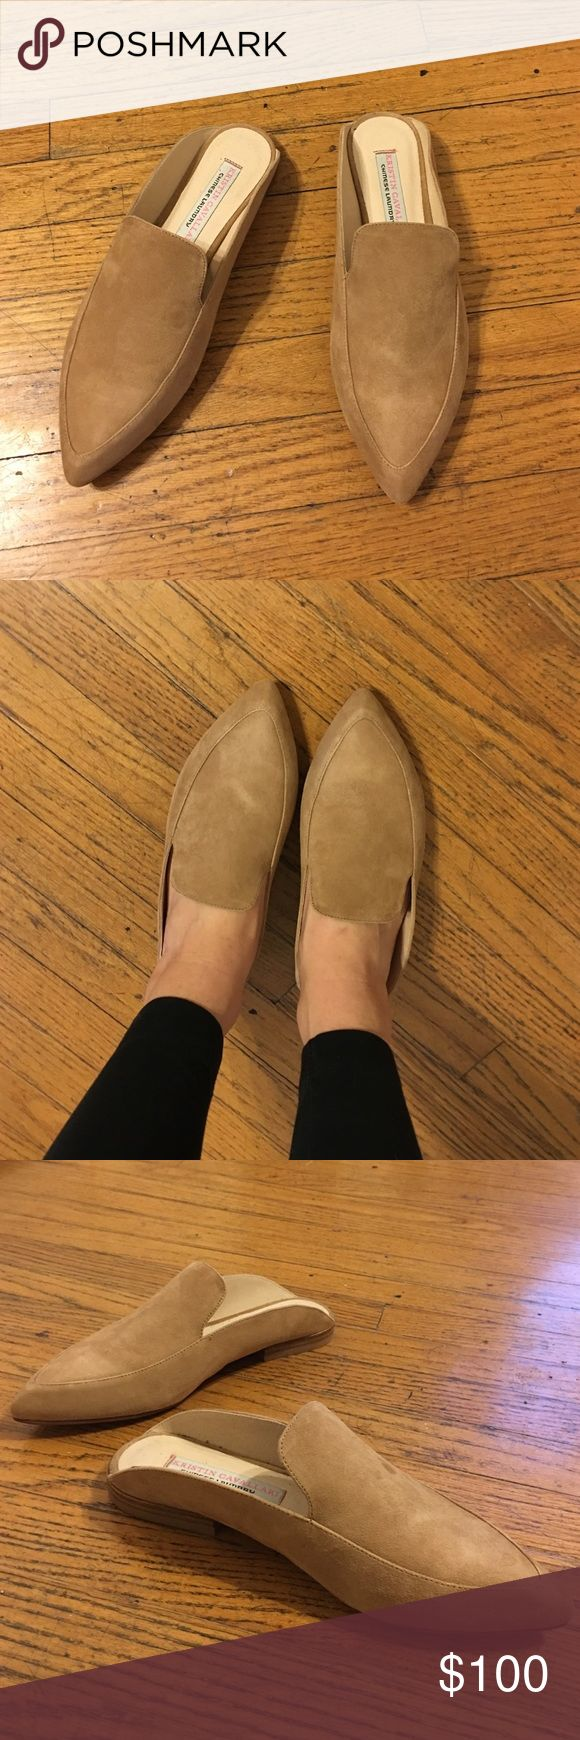 Chinese Laundry Kristin Cavallari Suede Mules - 7 Chinese Laundry Kristin Cavallari Suede Mules. Size 7. Tan color. Brand new never used. Chinese Laundry Shoes Flats & Loafers